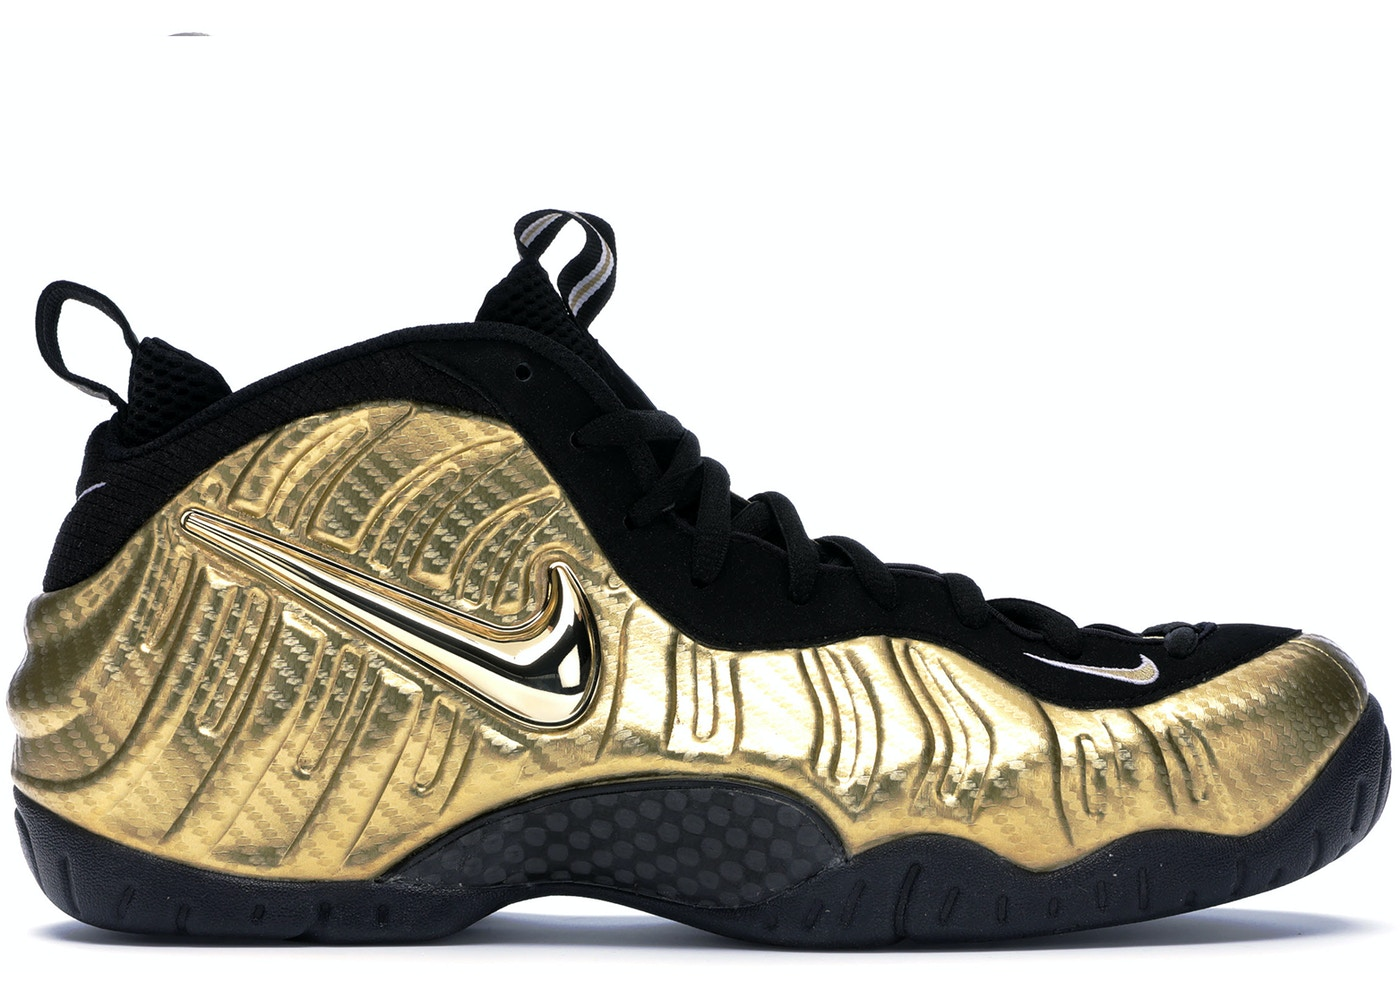 quality design 83614 1096d Buy Nike Foamposite Shoes   Deadstock Sneakers